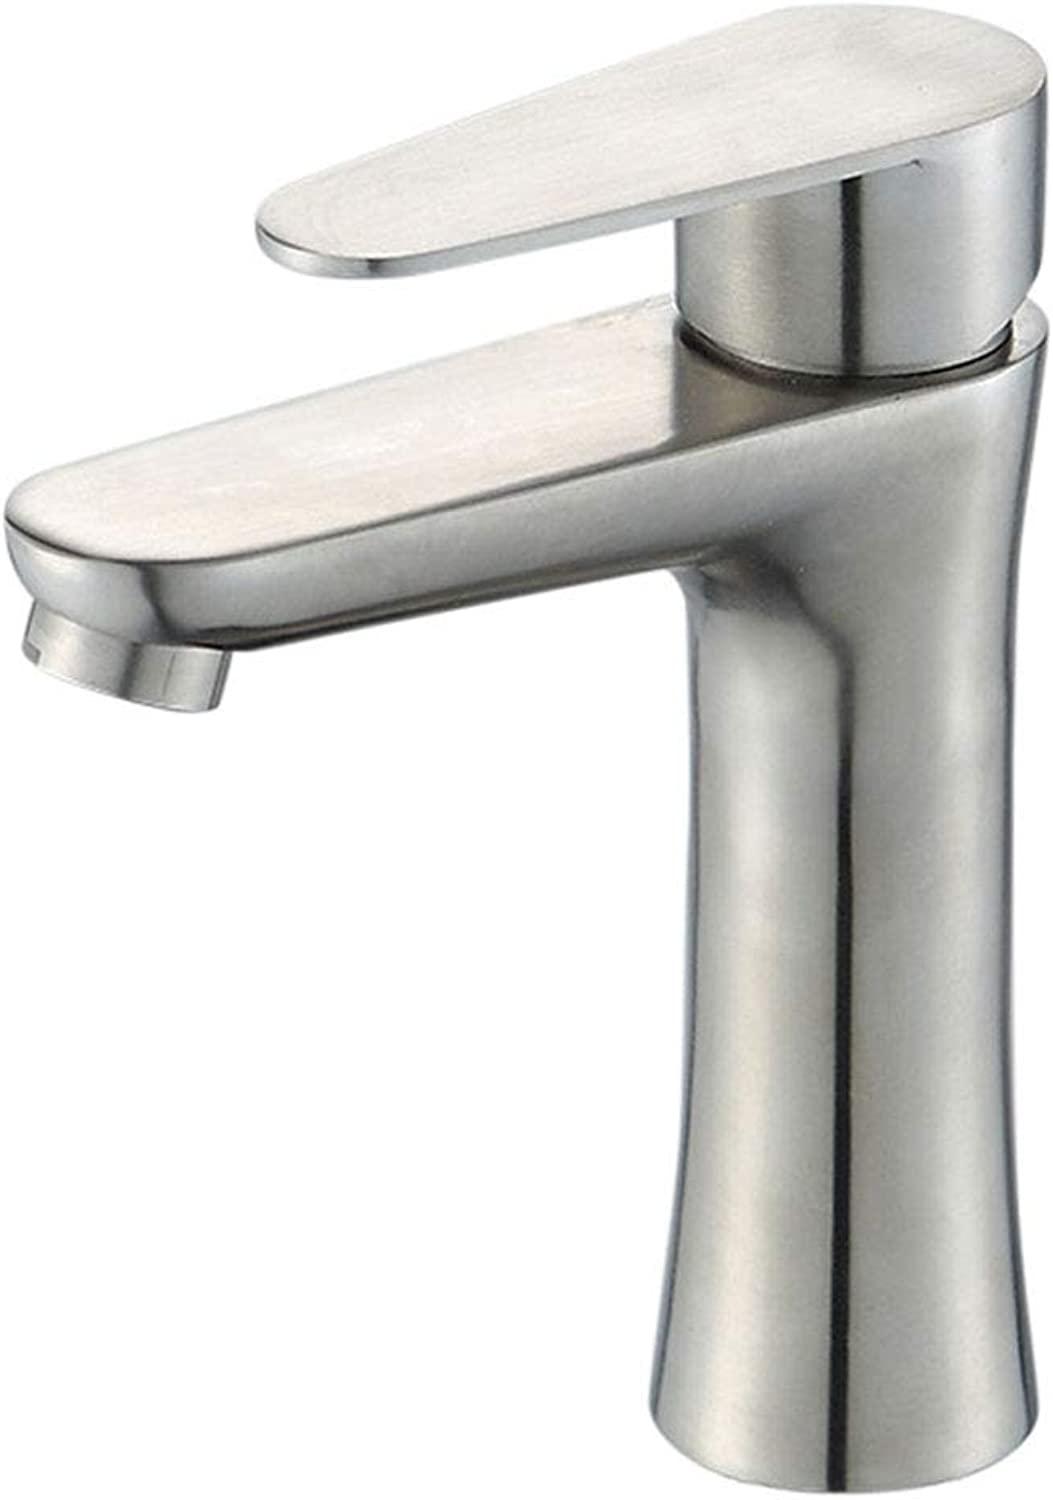 Yxx max Bathroom Faucet Washbasin Faucet Hot And Cold Single Hole 304 Upper Basin Faucet